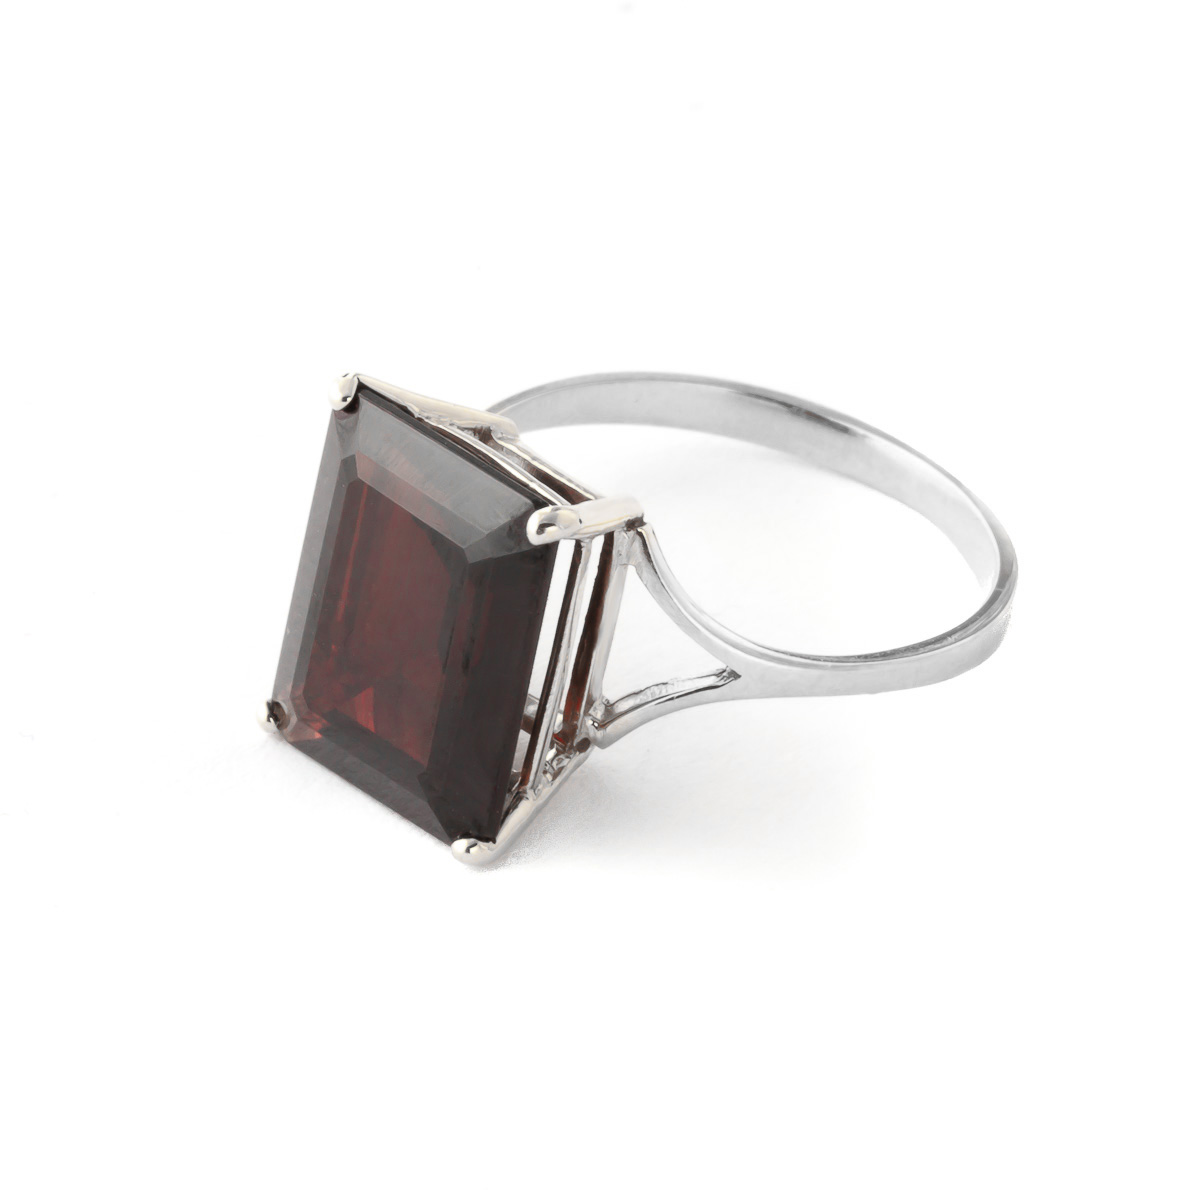 Garnet Ring 7.0ct in 9ct White Gold